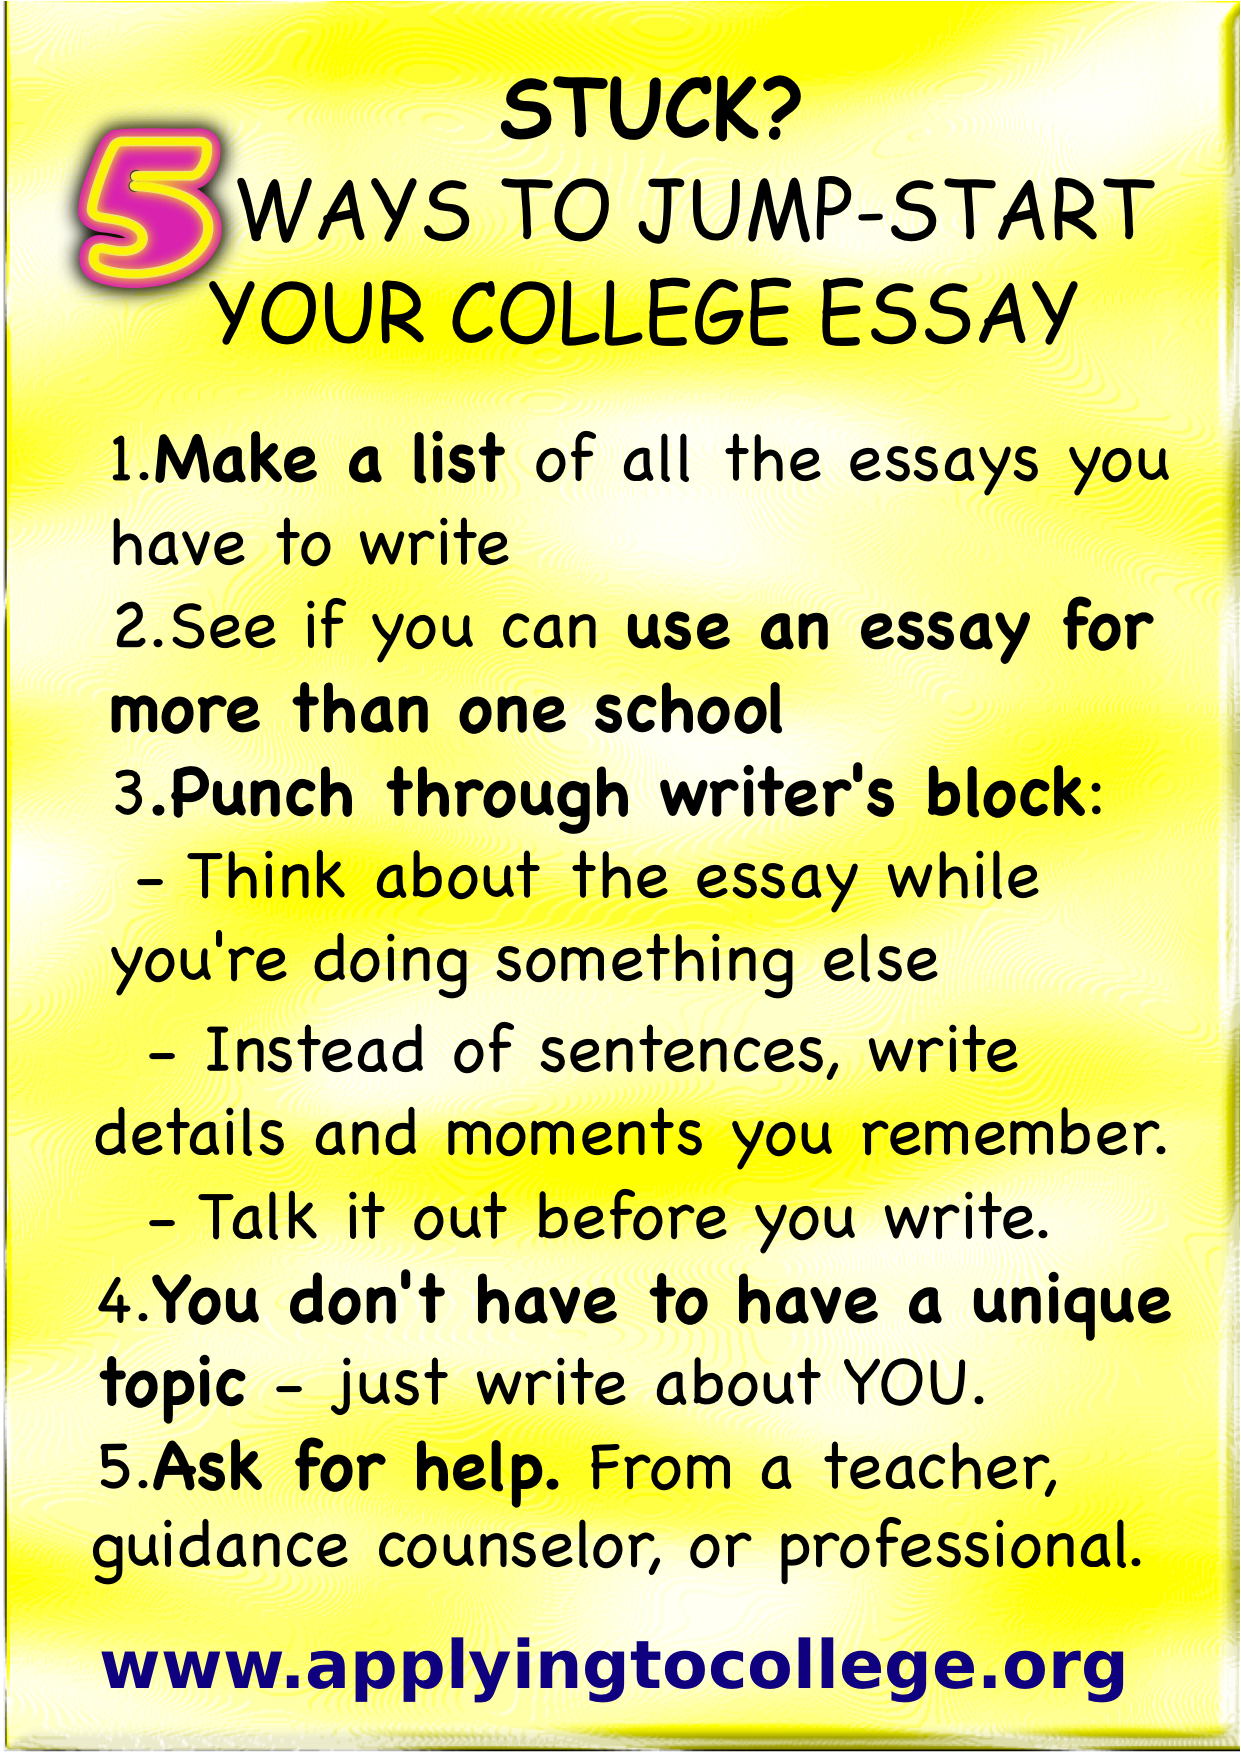 College application essay writing help introduction